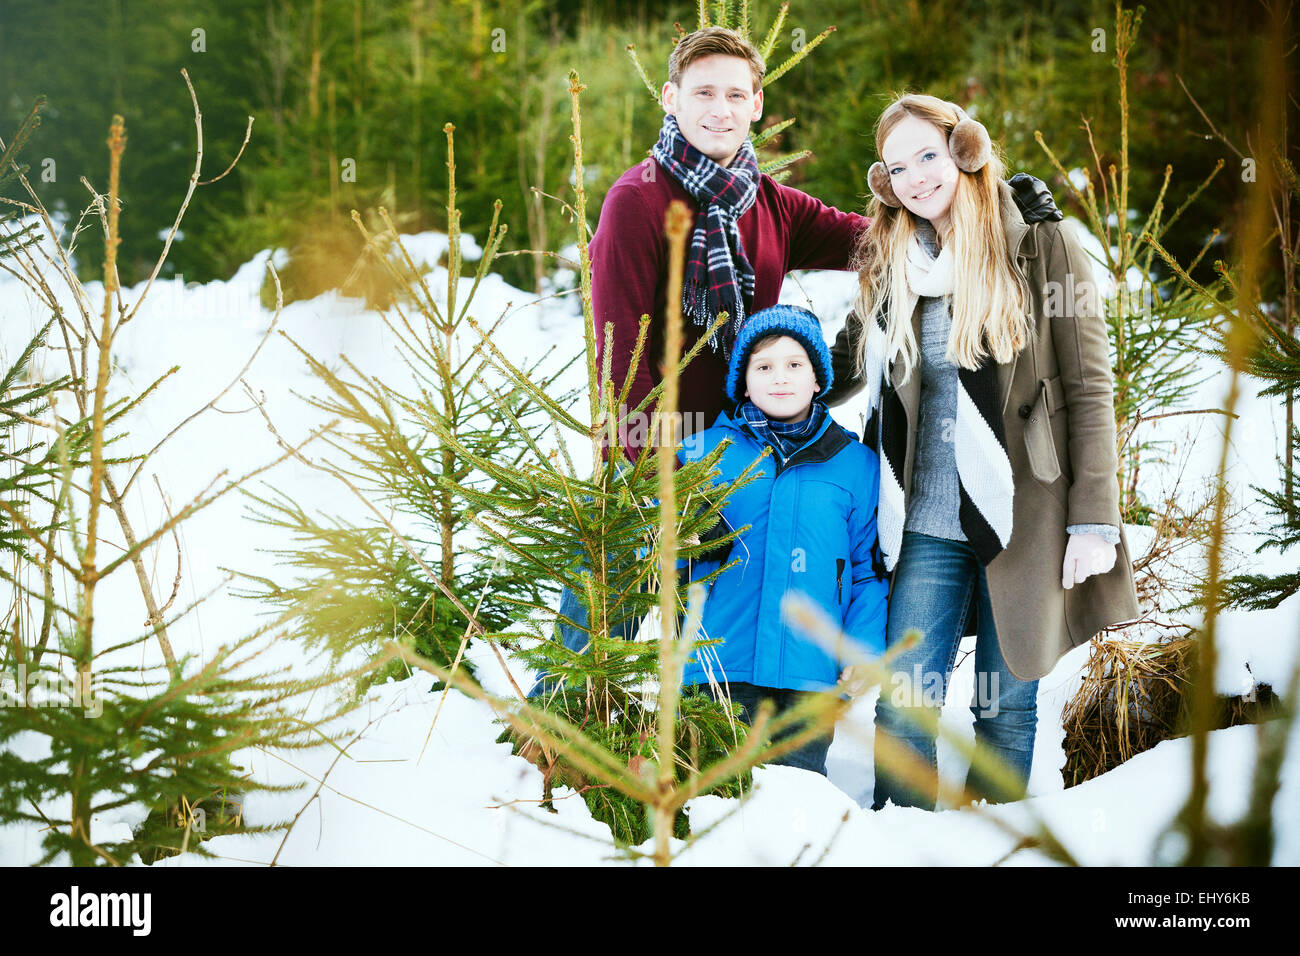 Family searching for the perfect Christmas tree - Stock Image